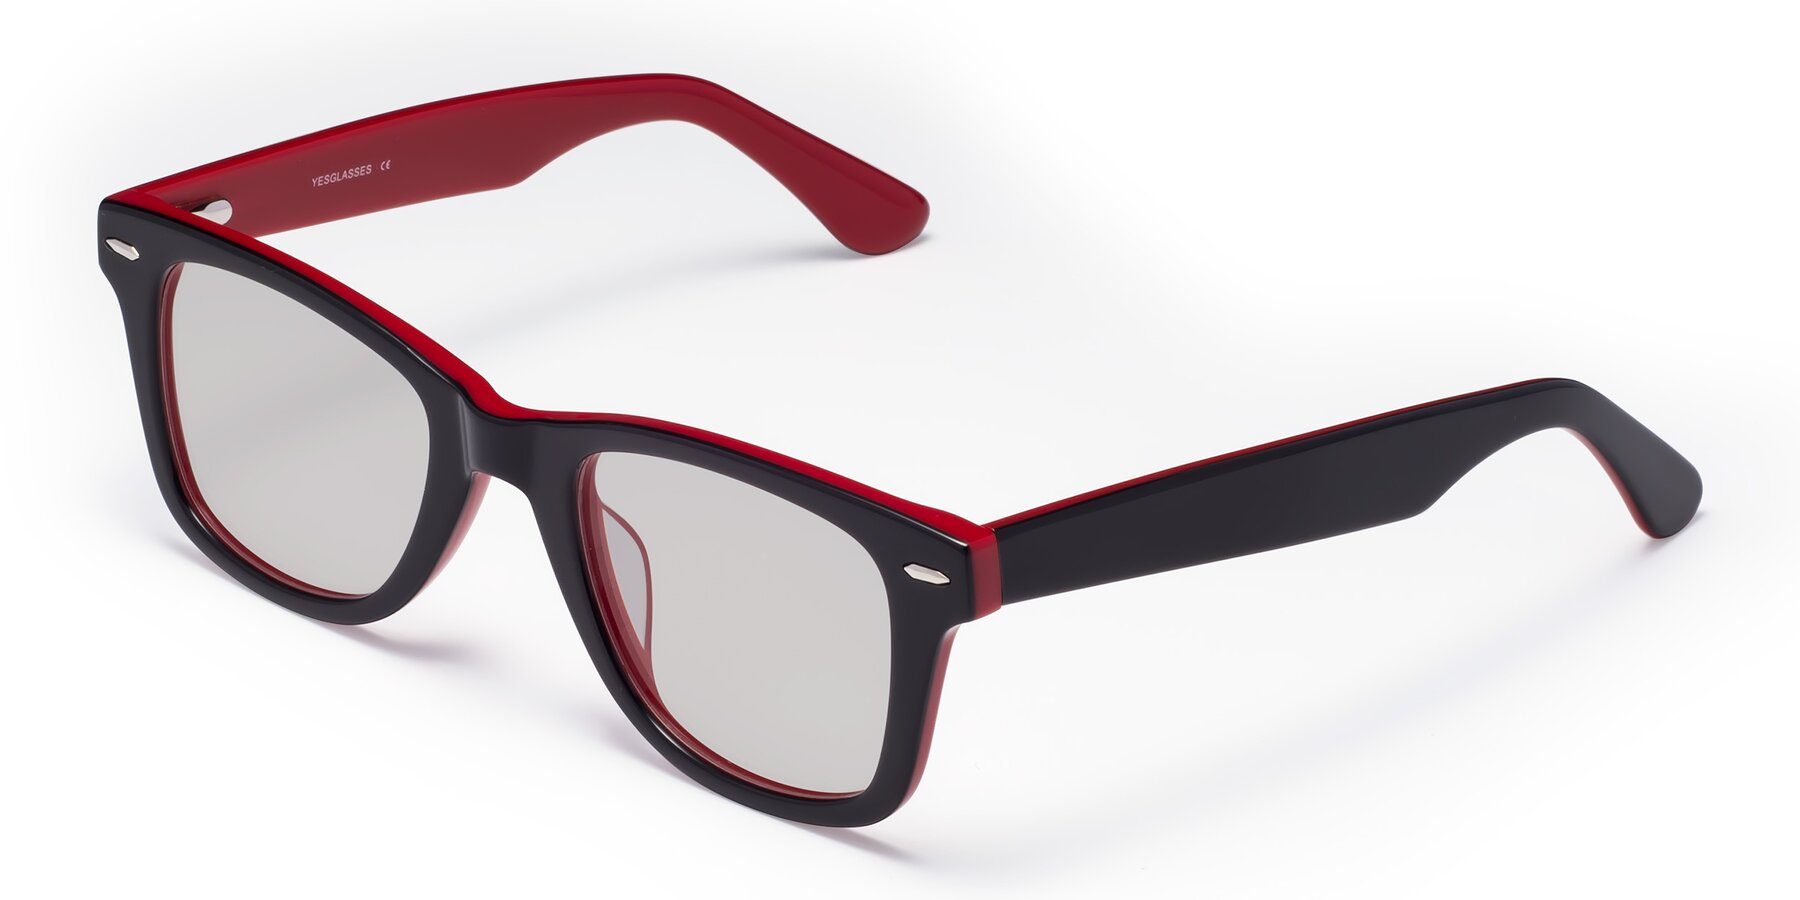 Angle of Rocky in Black-Wine with Light Gray Tinted Lenses